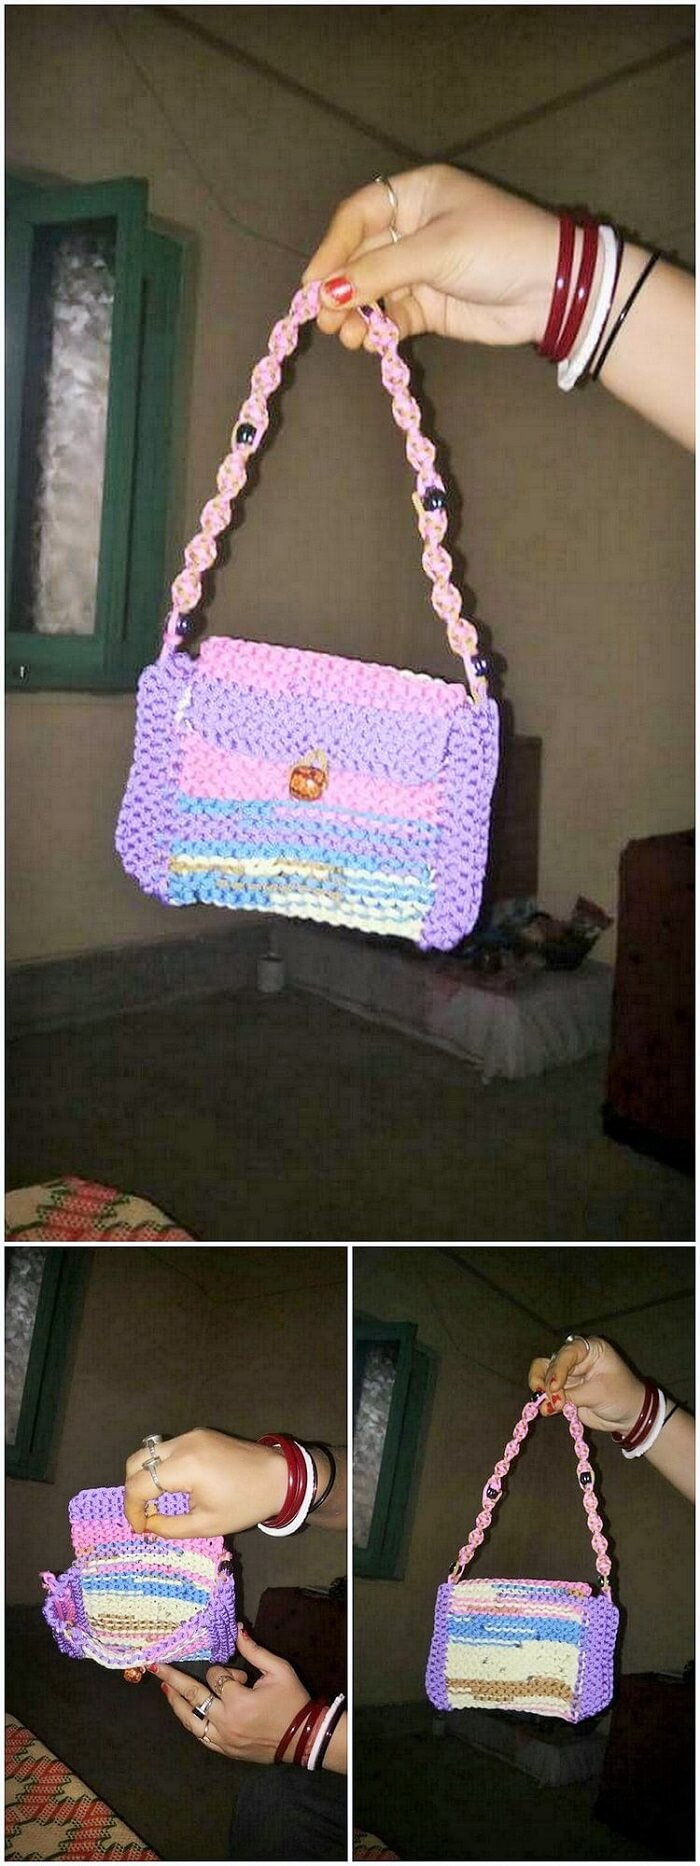 Crochet handbag craft idea